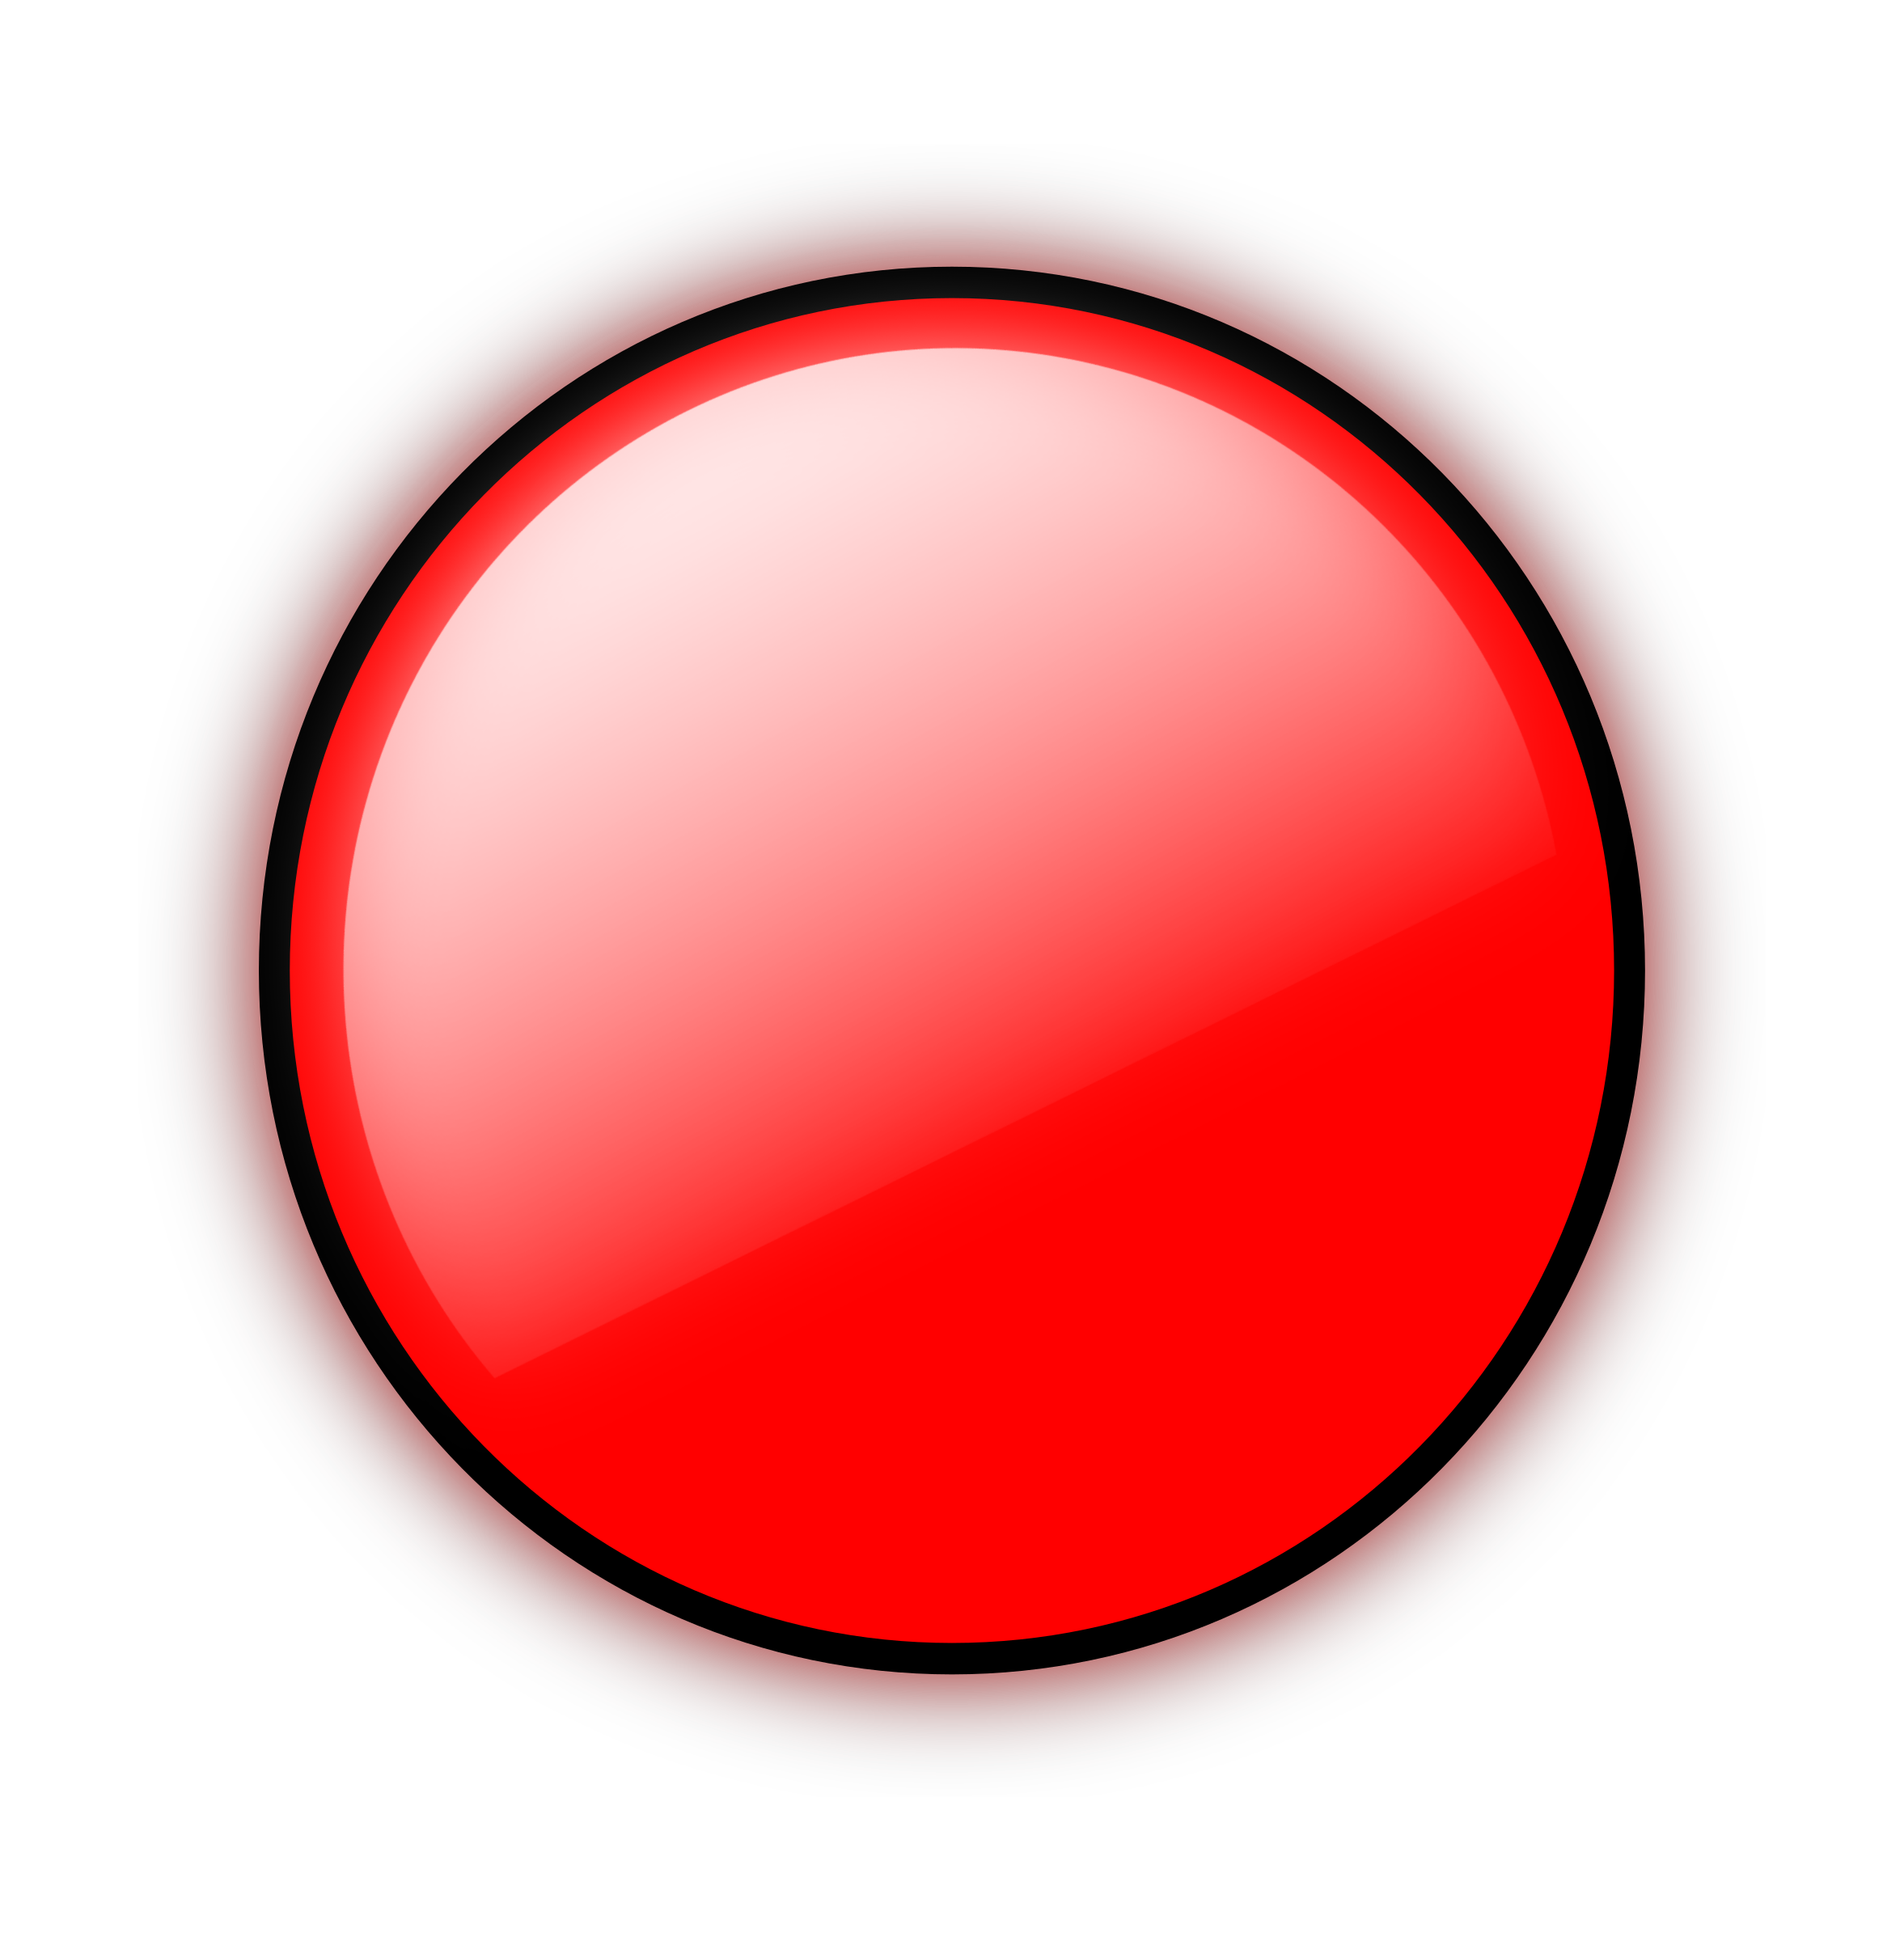 Clipart - Red Circle